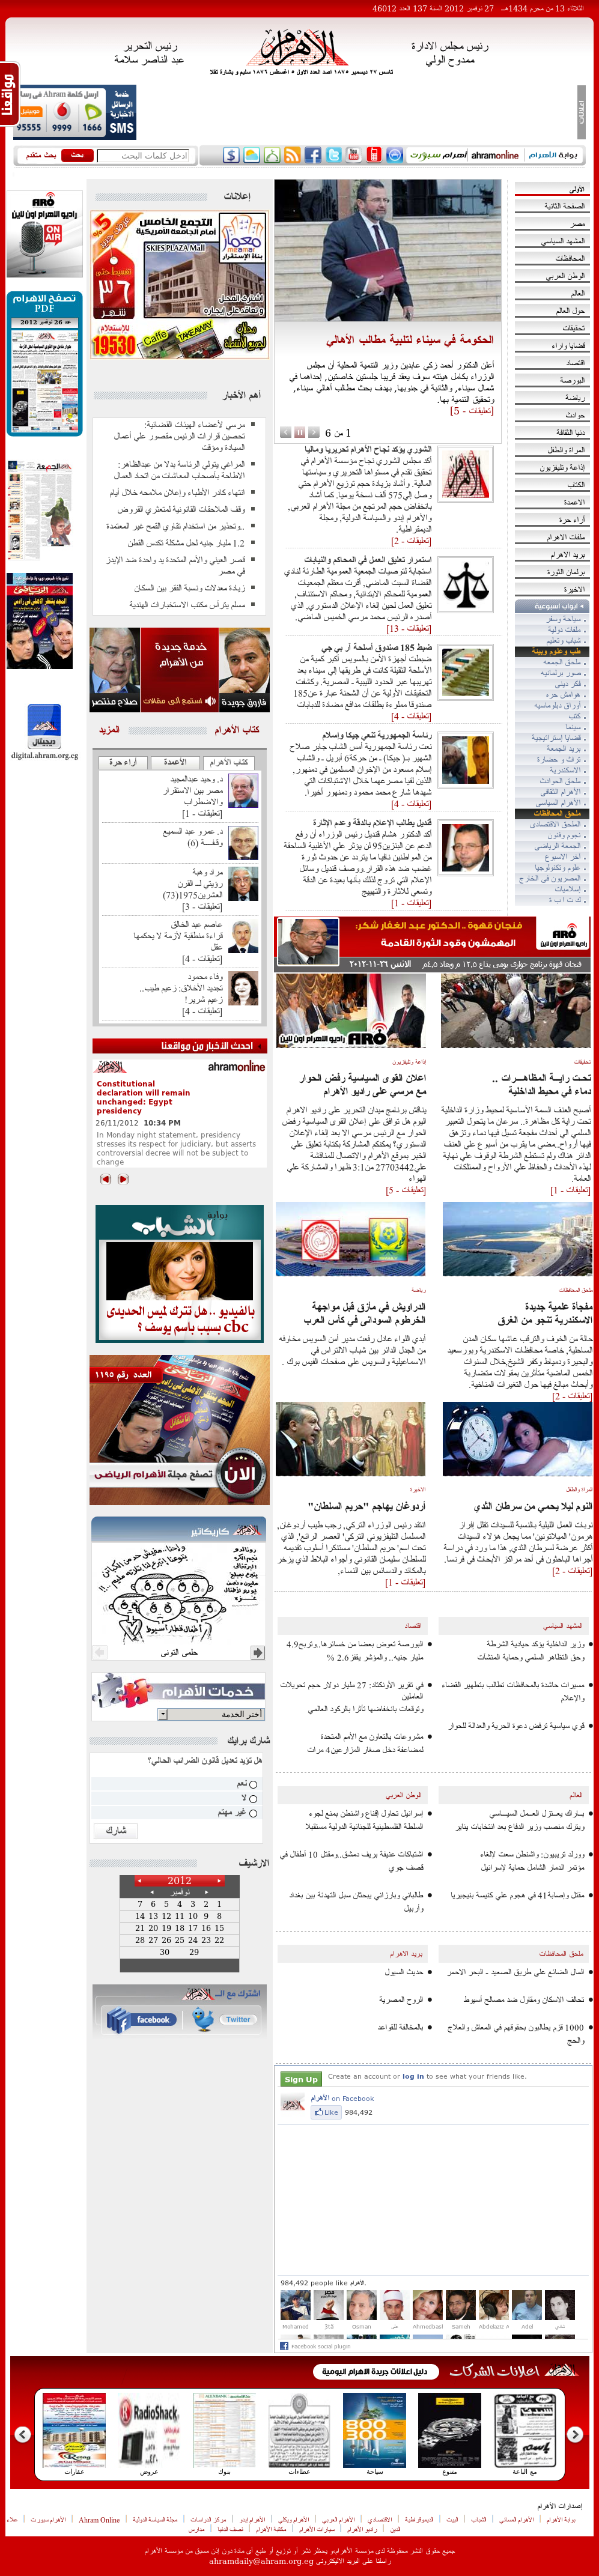 Al-Ahram at Tuesday Nov. 27, 2012, 2 a.m. UTC